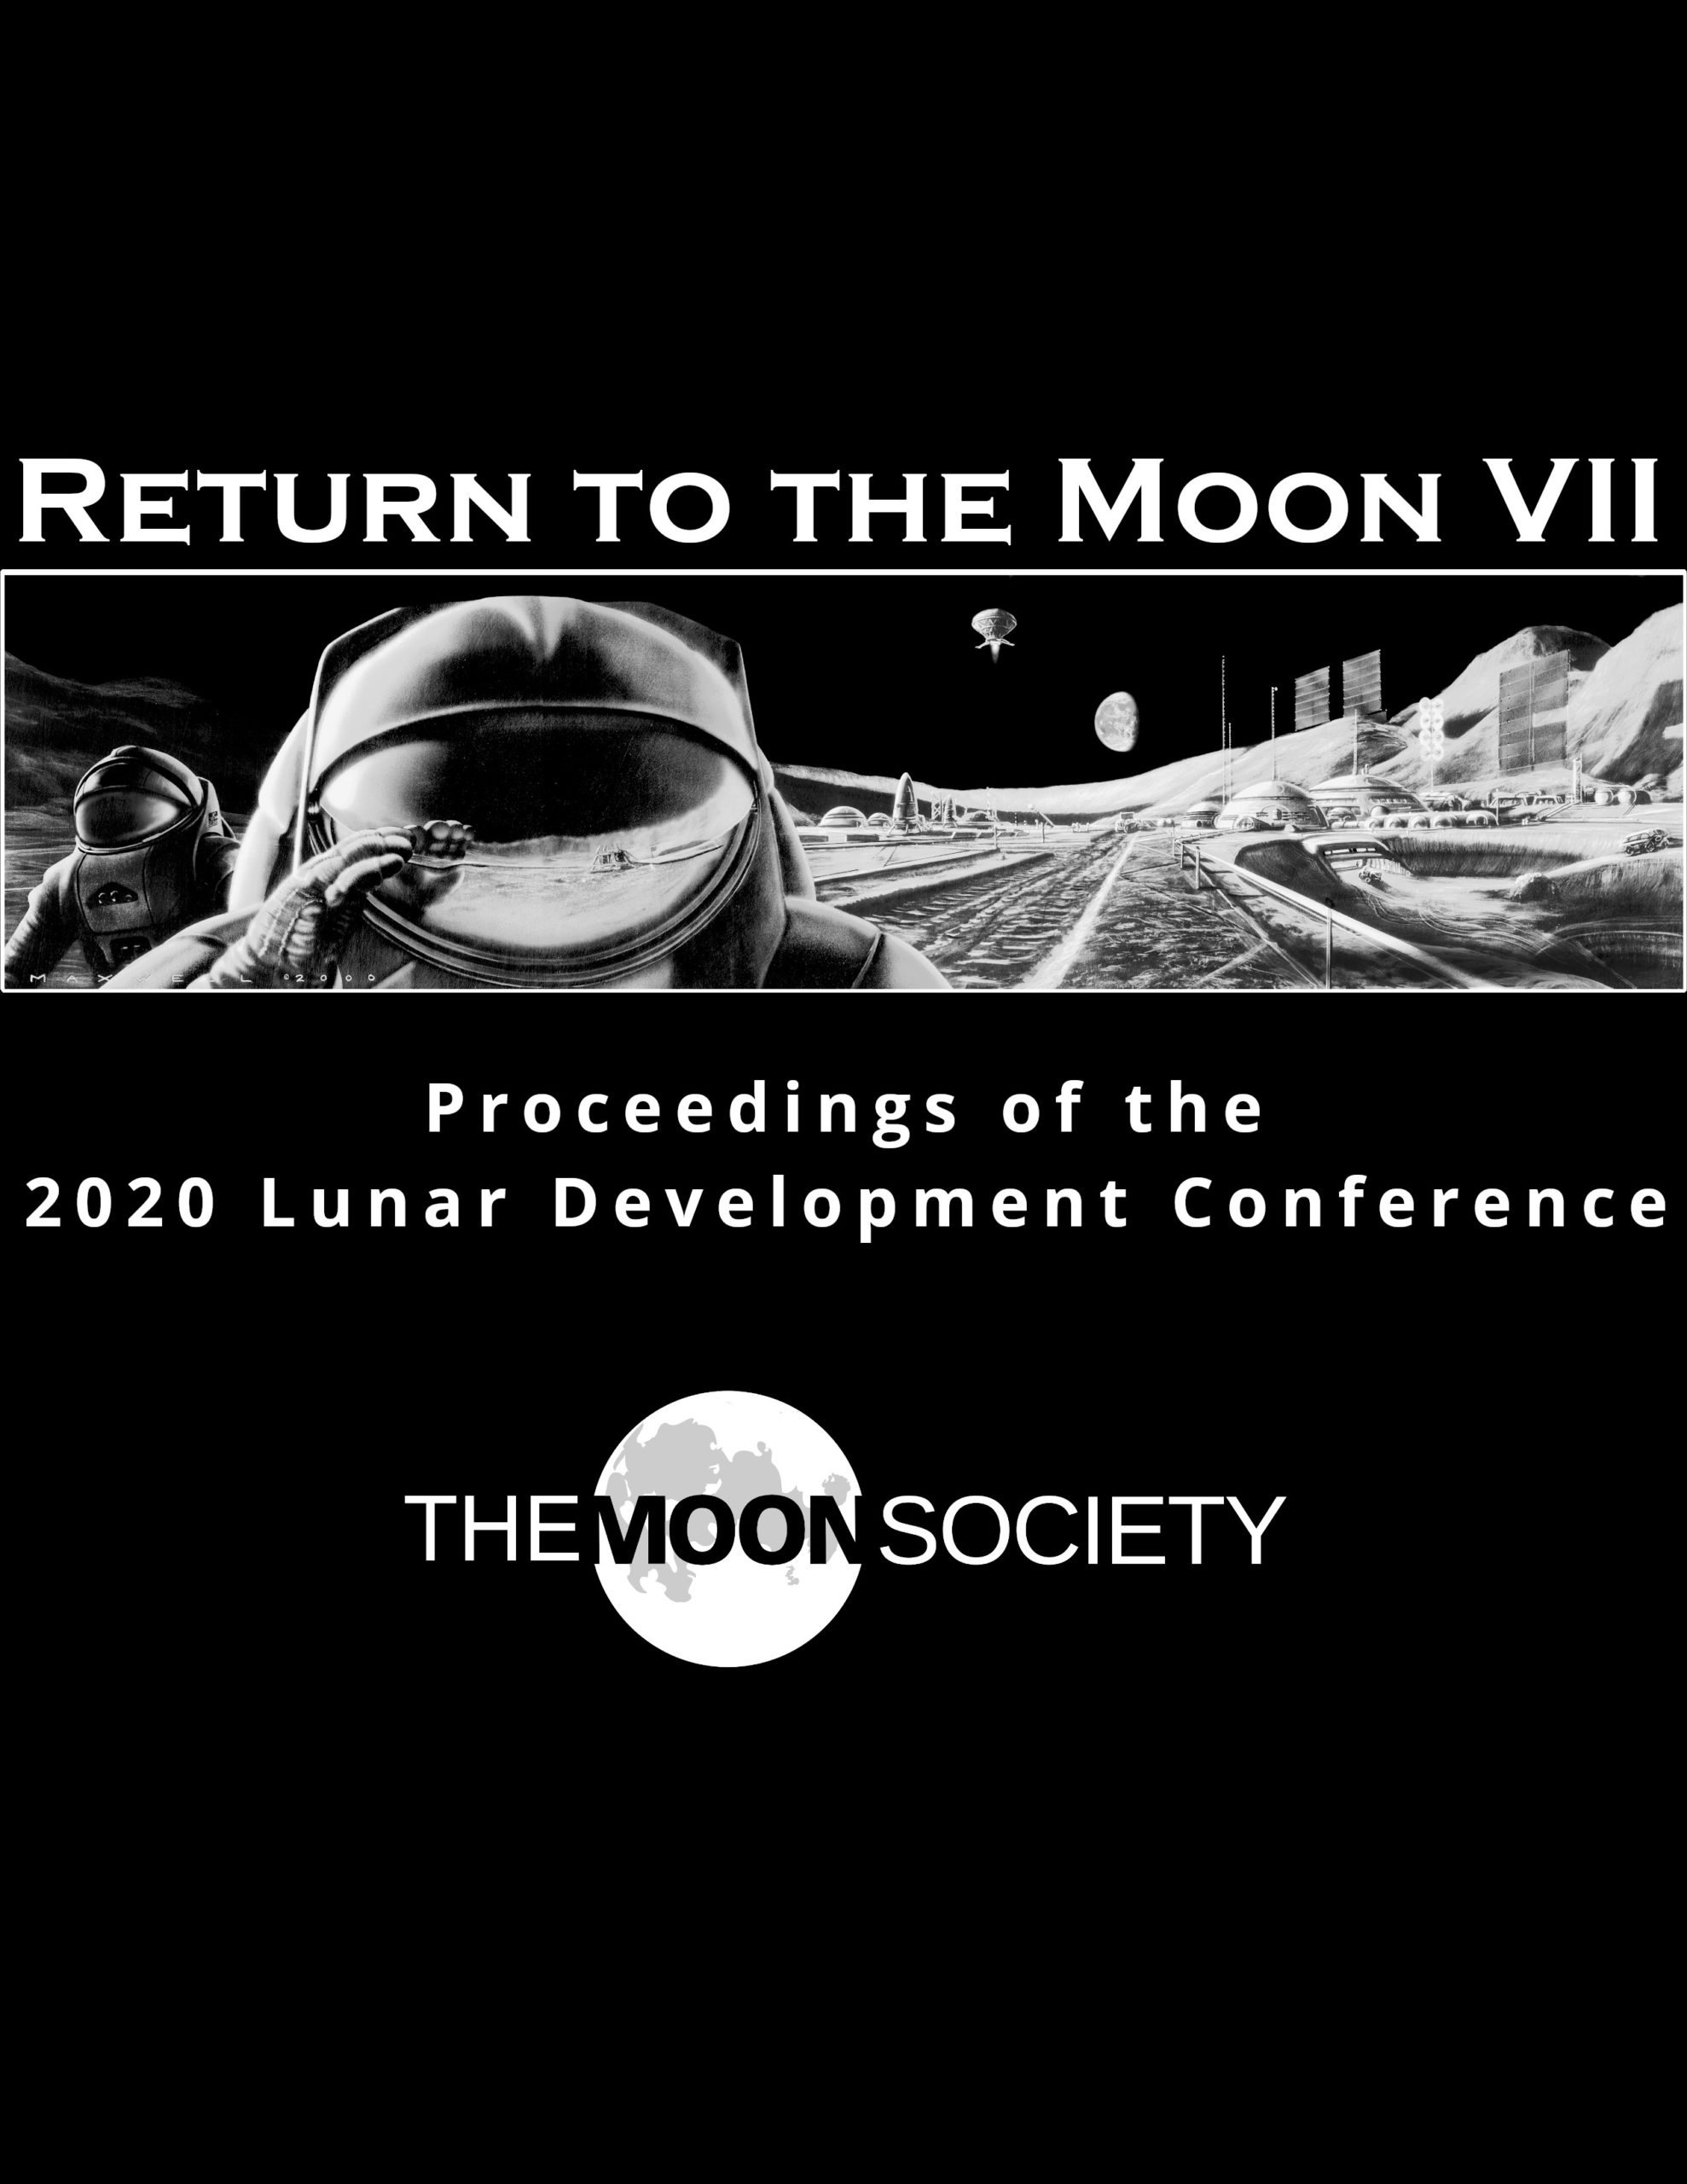 Return to the Moon VII